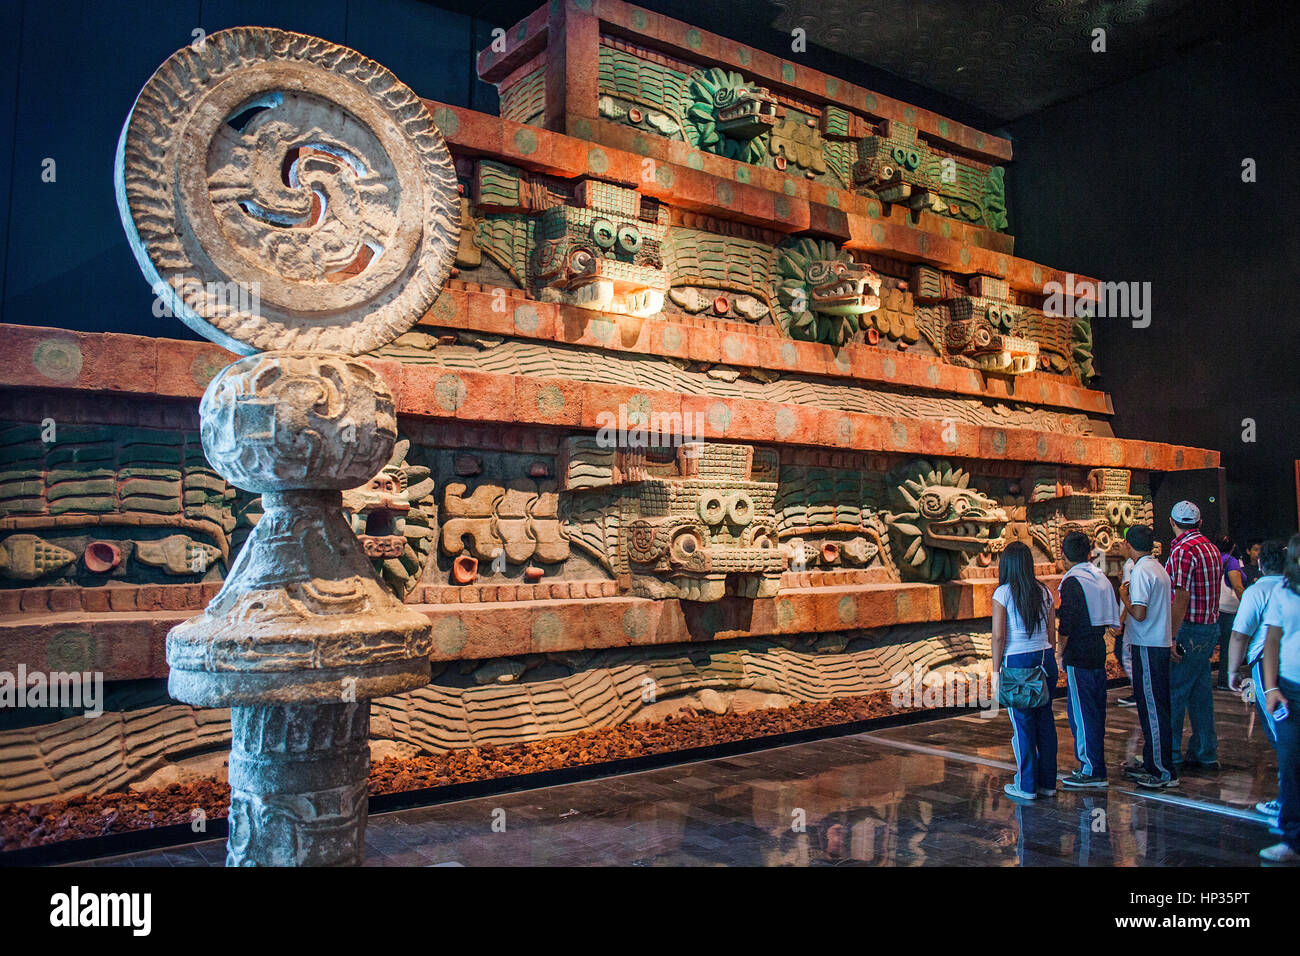 Replica, `Piramide de la serpiente emplumada´, Pyramid of the Feathered Serpent, or snake,from Teotihuacan, - Stock Image